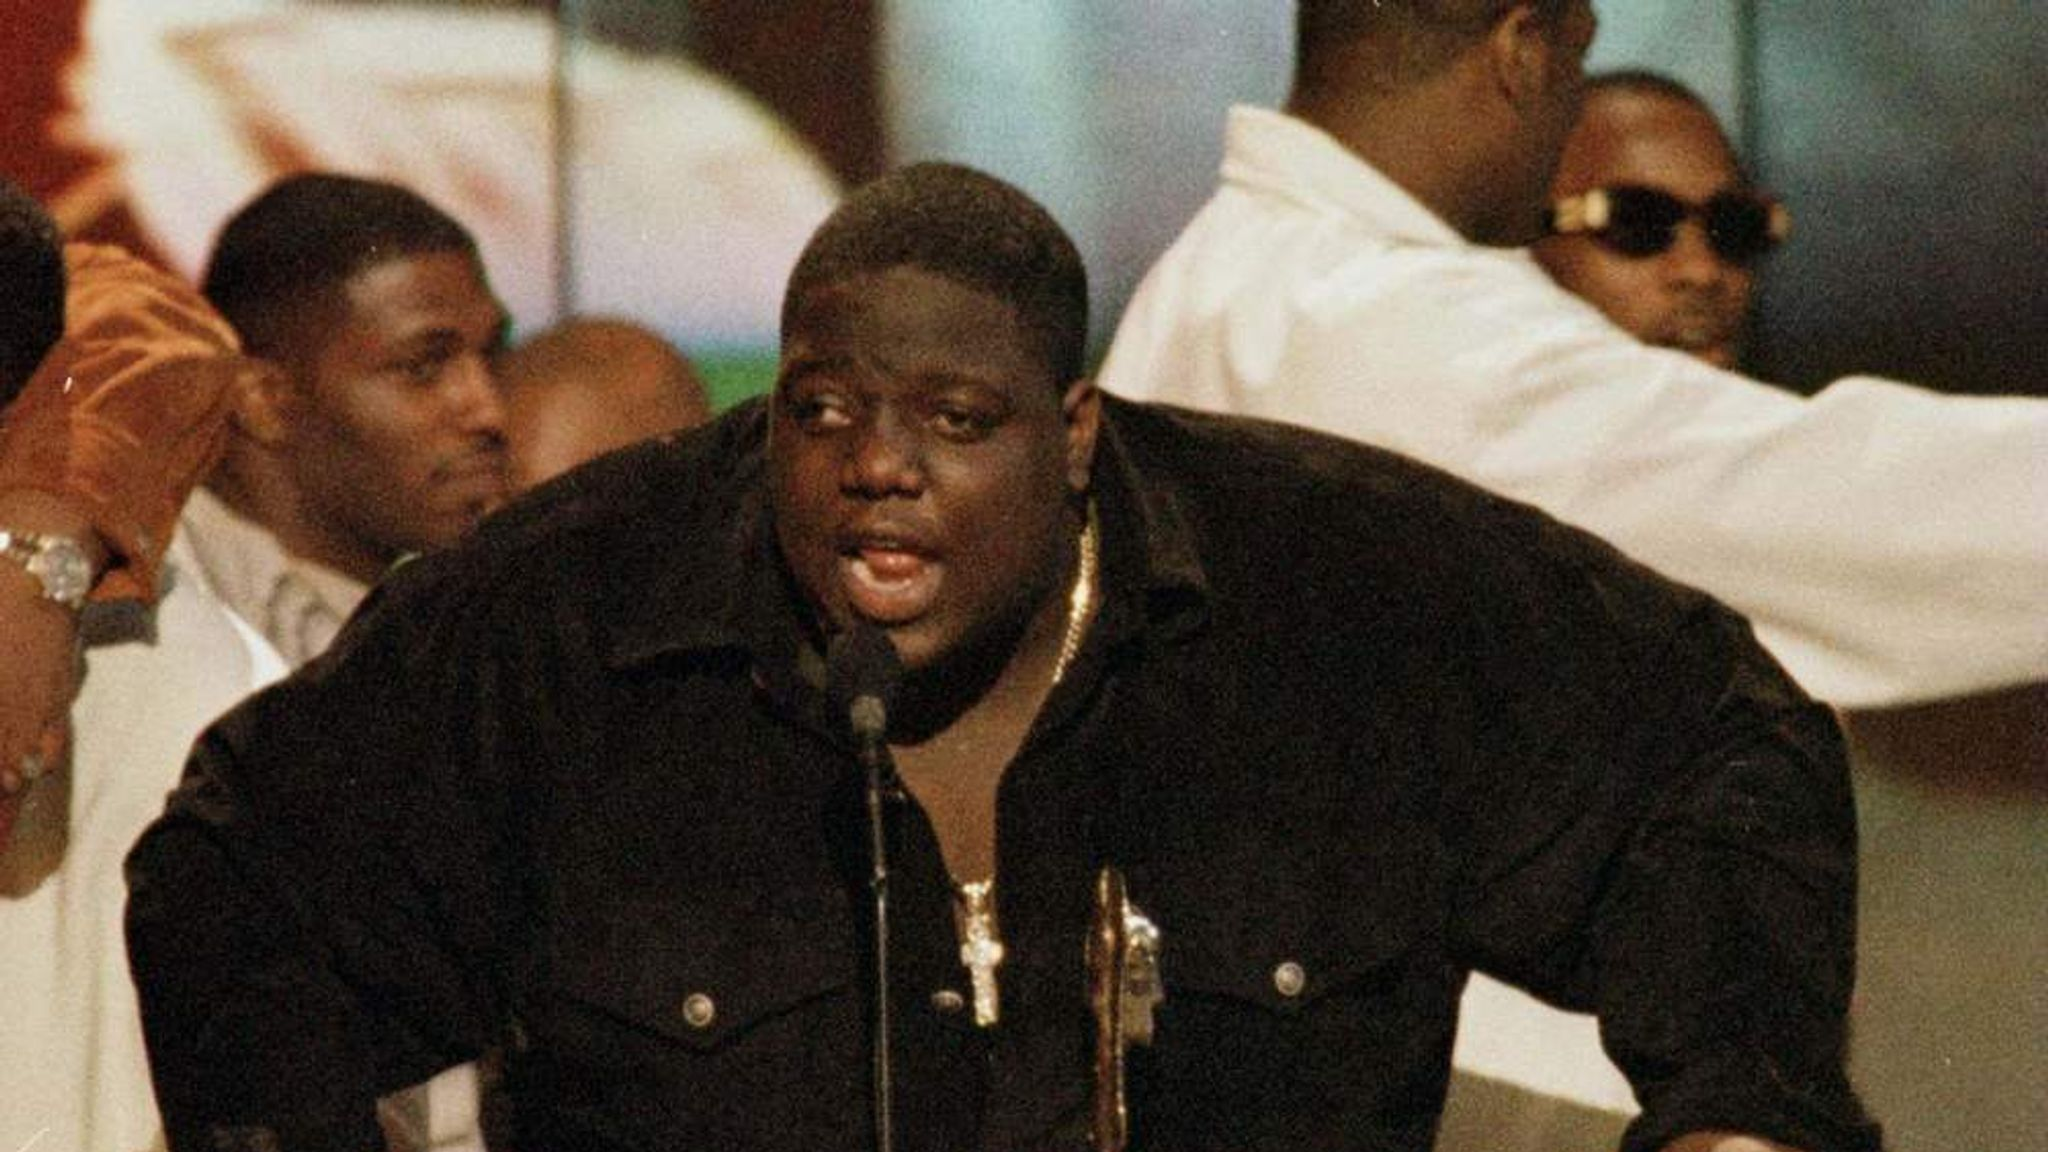 AampE documentary Biggie The Life of Notorious BIG